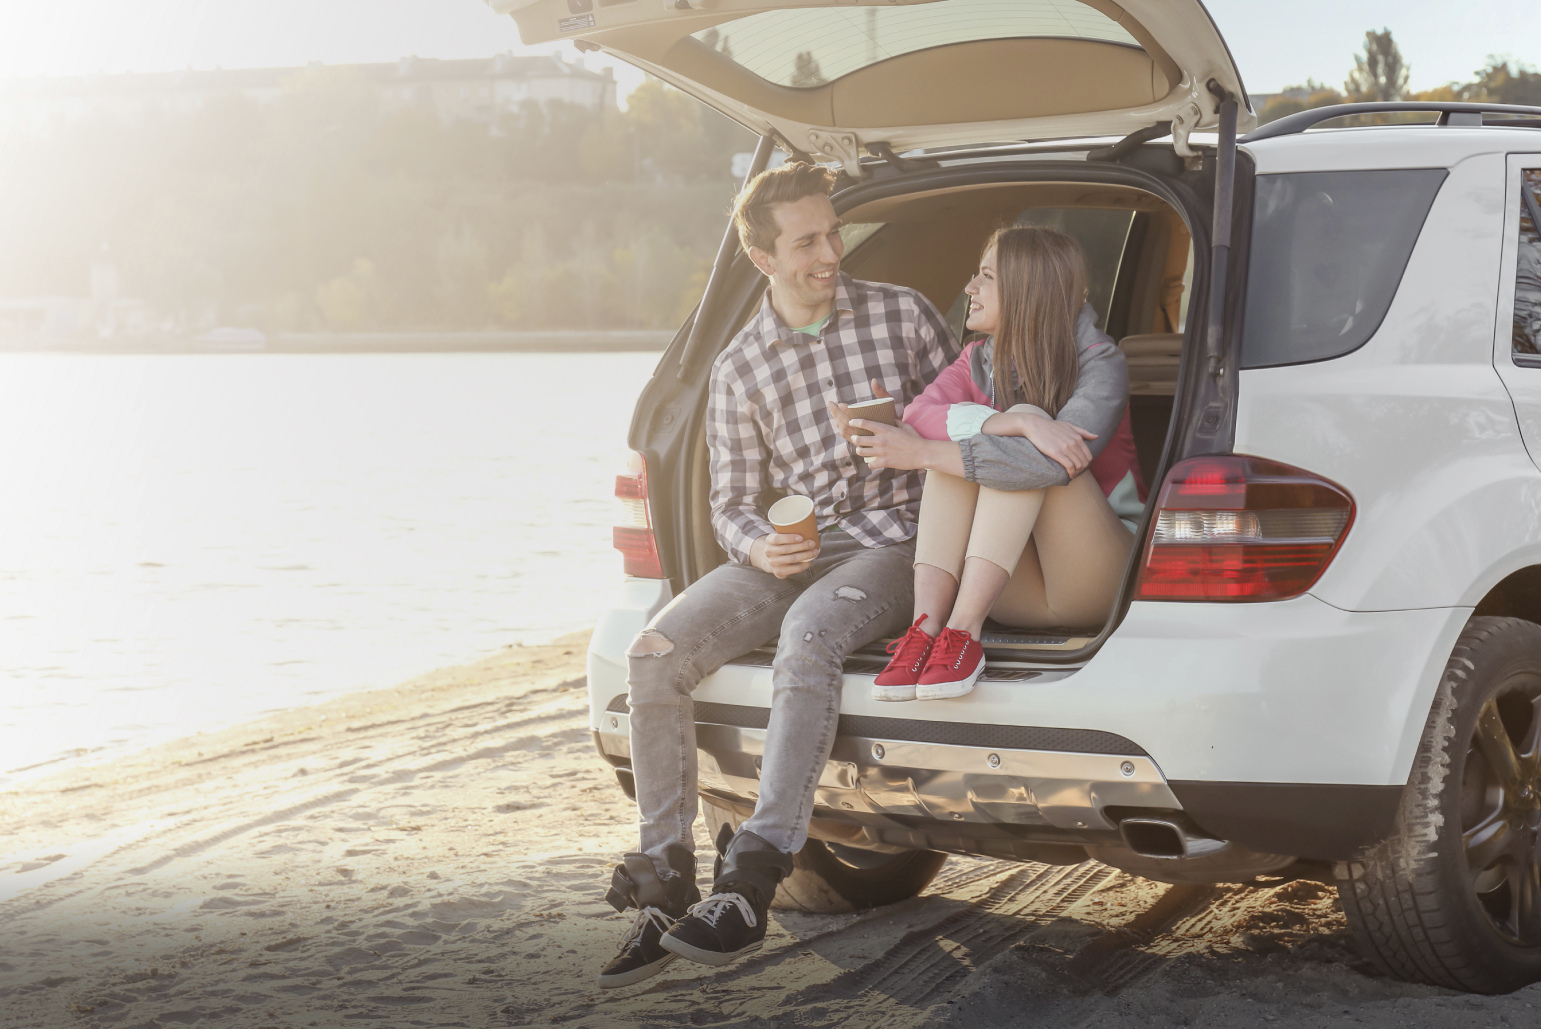 Man and woman first-time car buyers sitting on tailgate